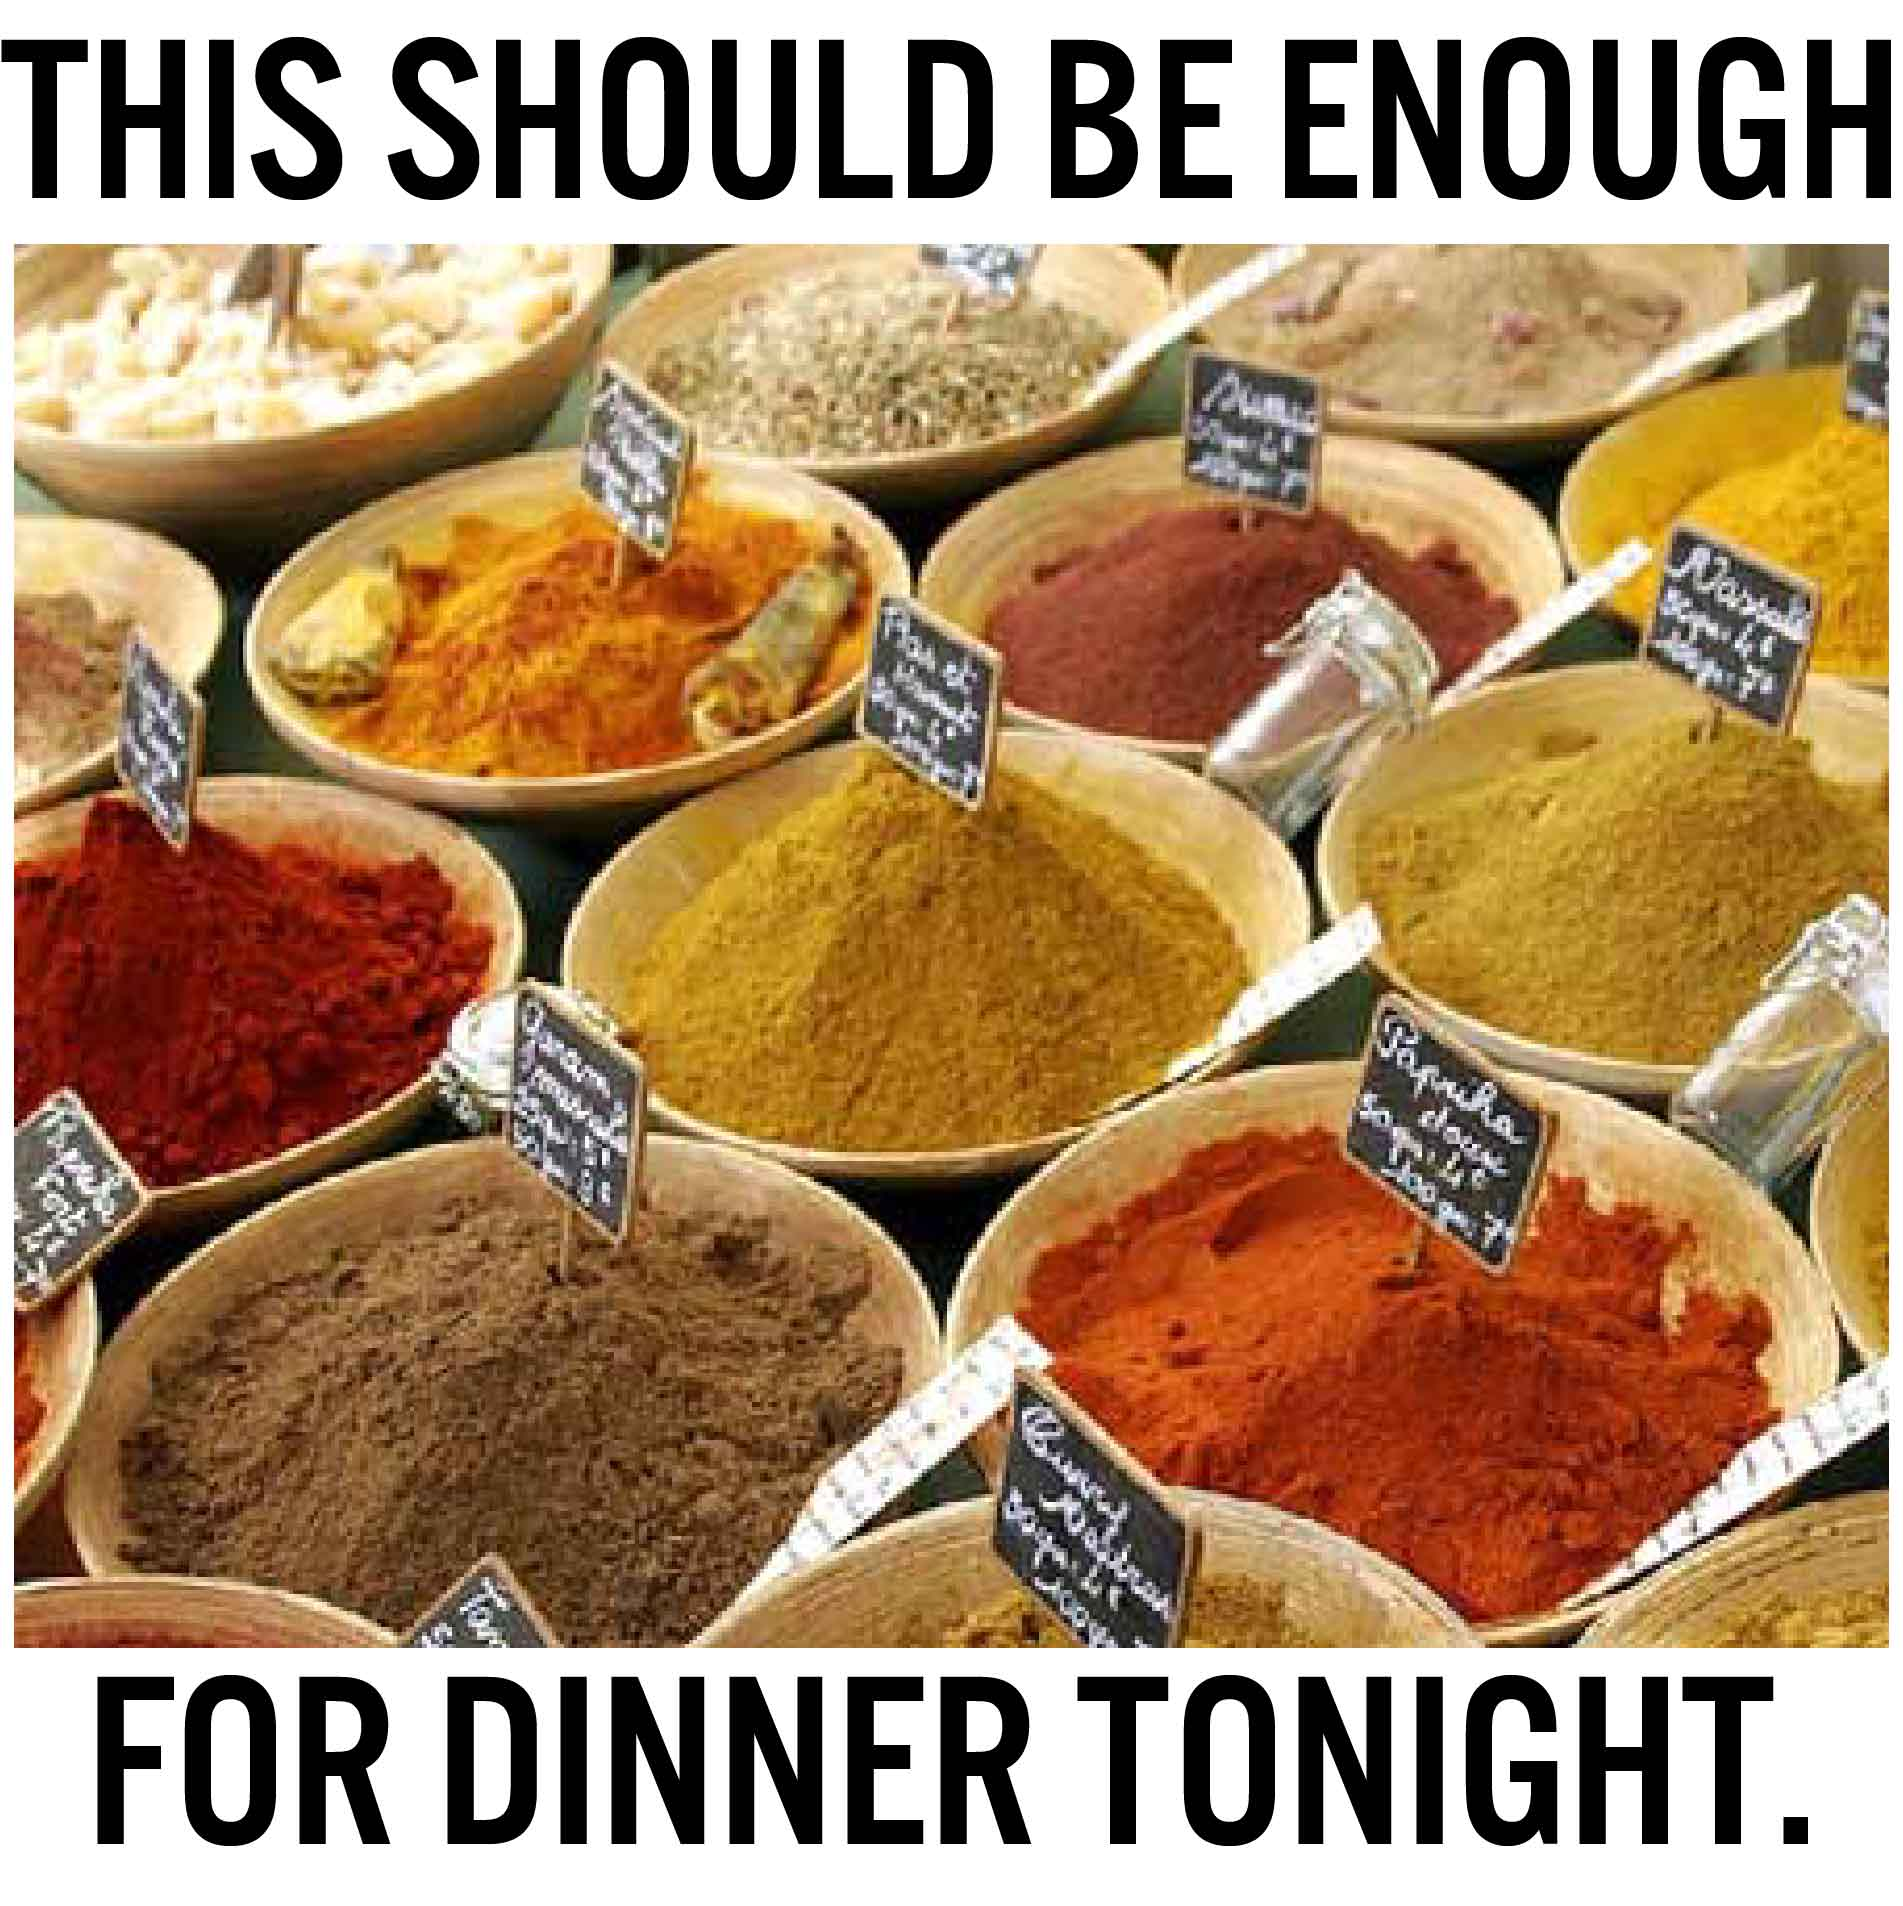 Spices come in... and spices must come out!